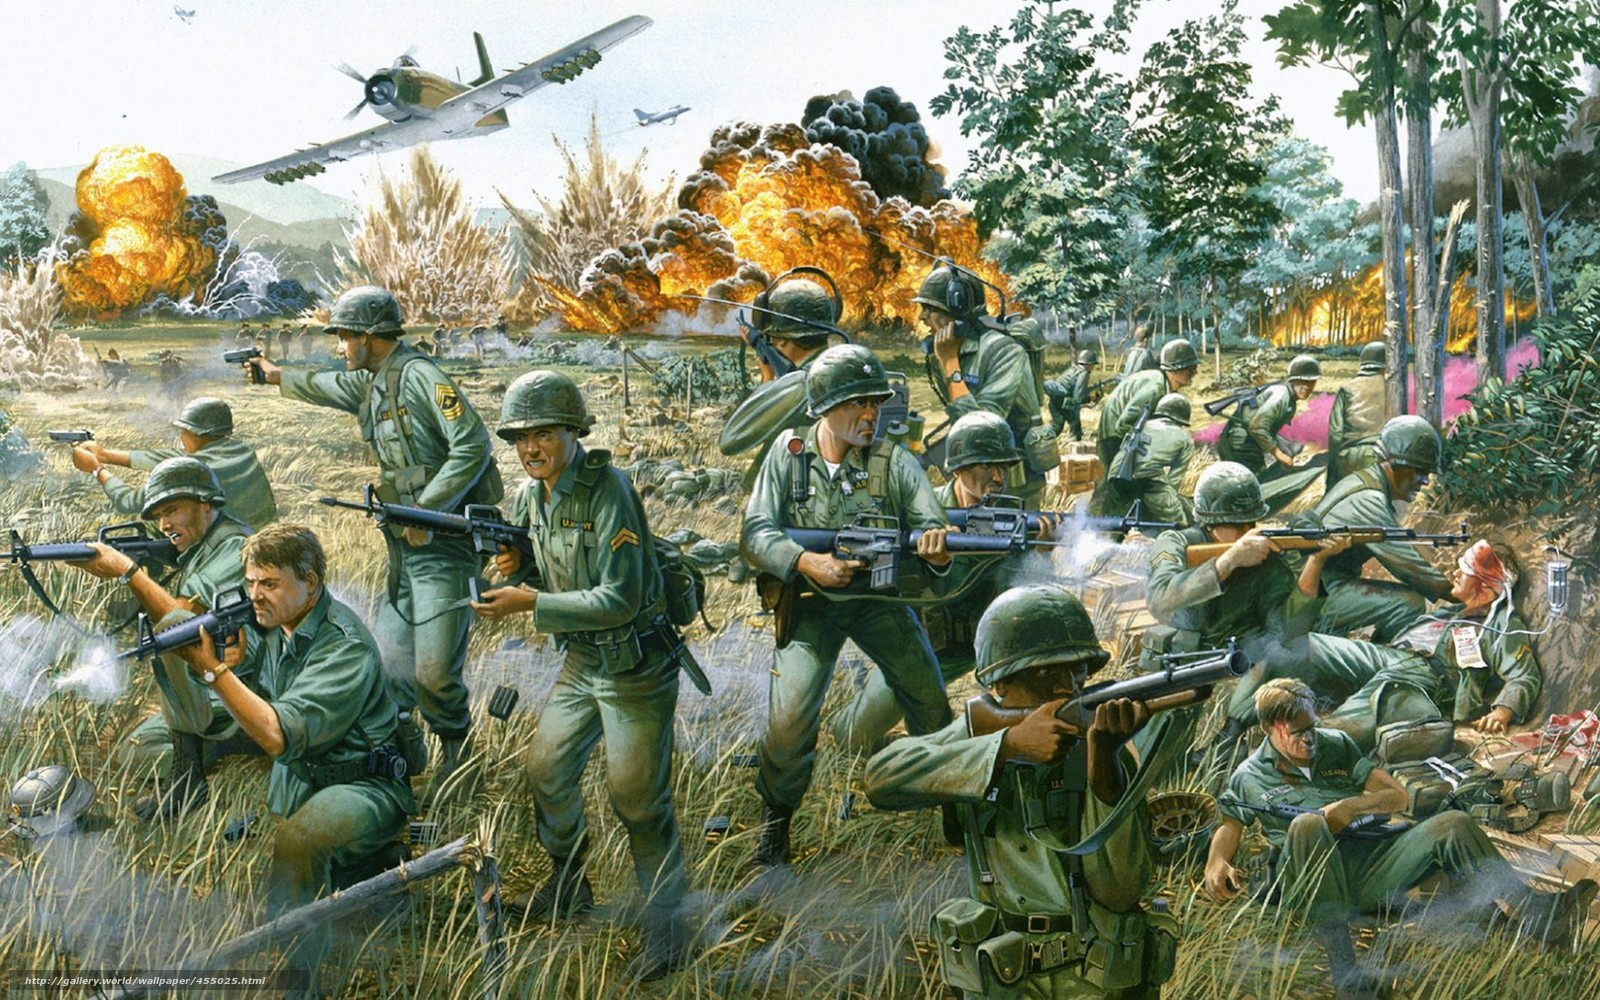 a fist person account of the vietnam war from the perspective of an army lieutenant